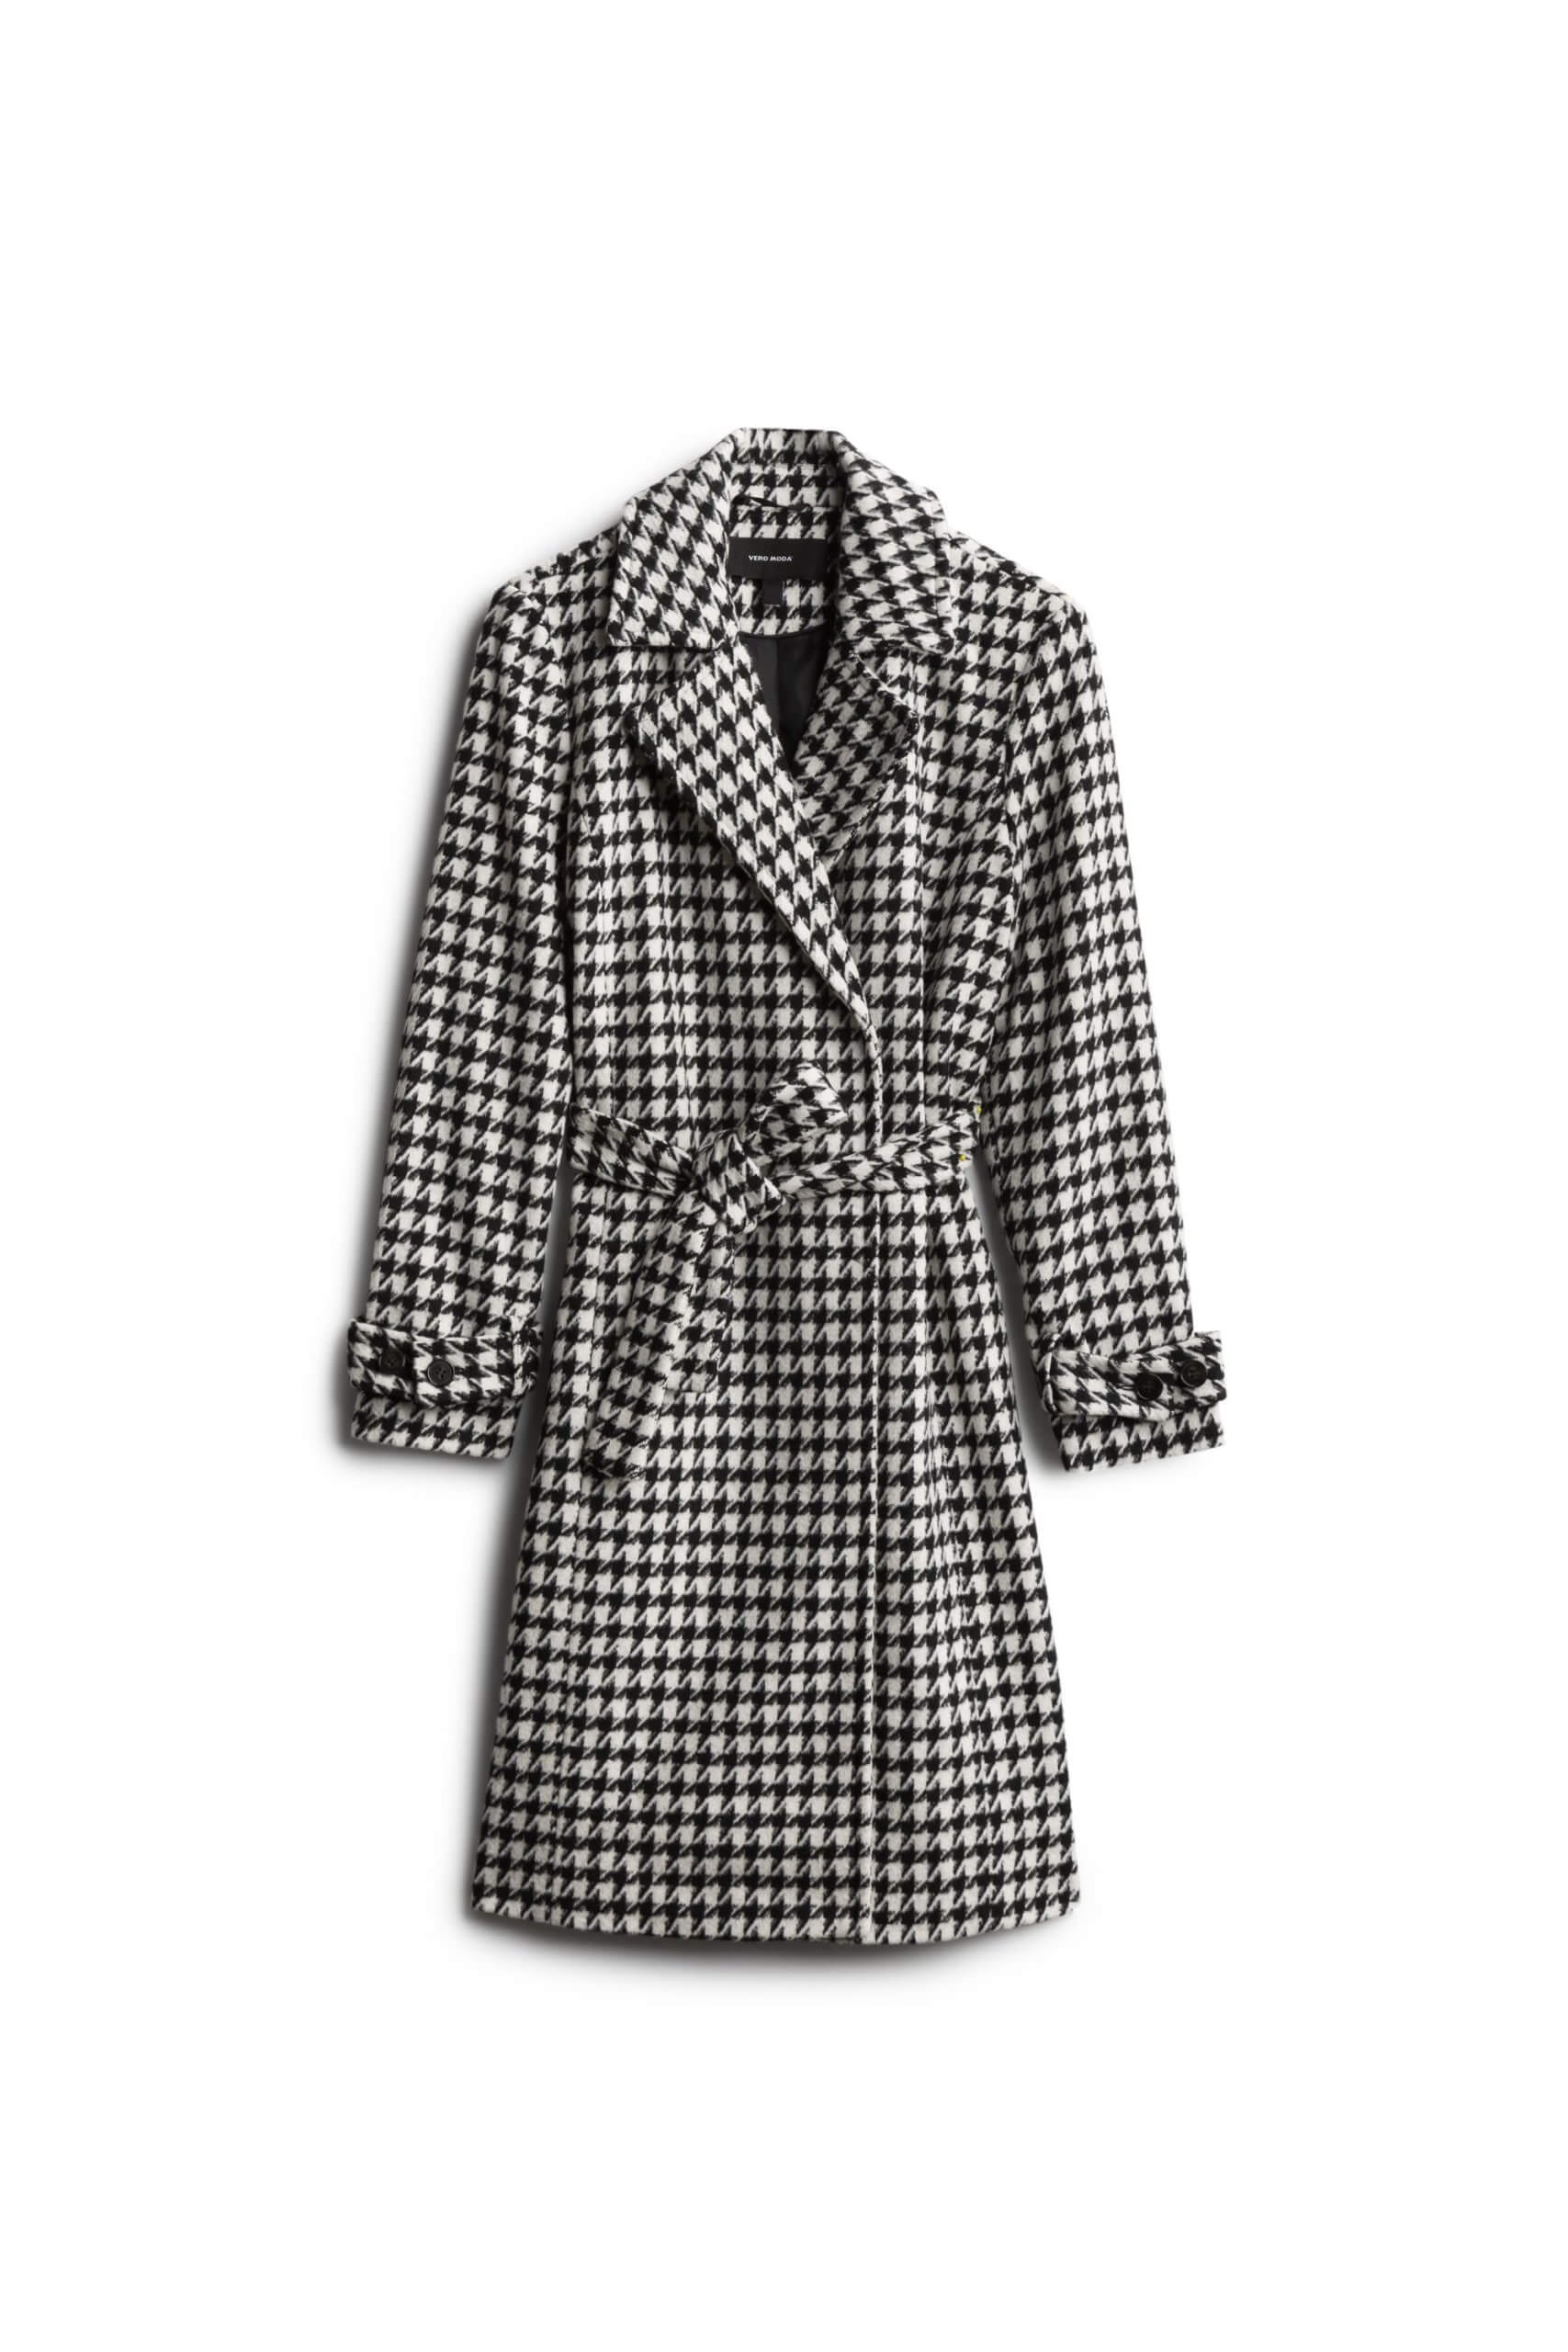 Stitch Fix Women's black and white houndstooth trench coat.